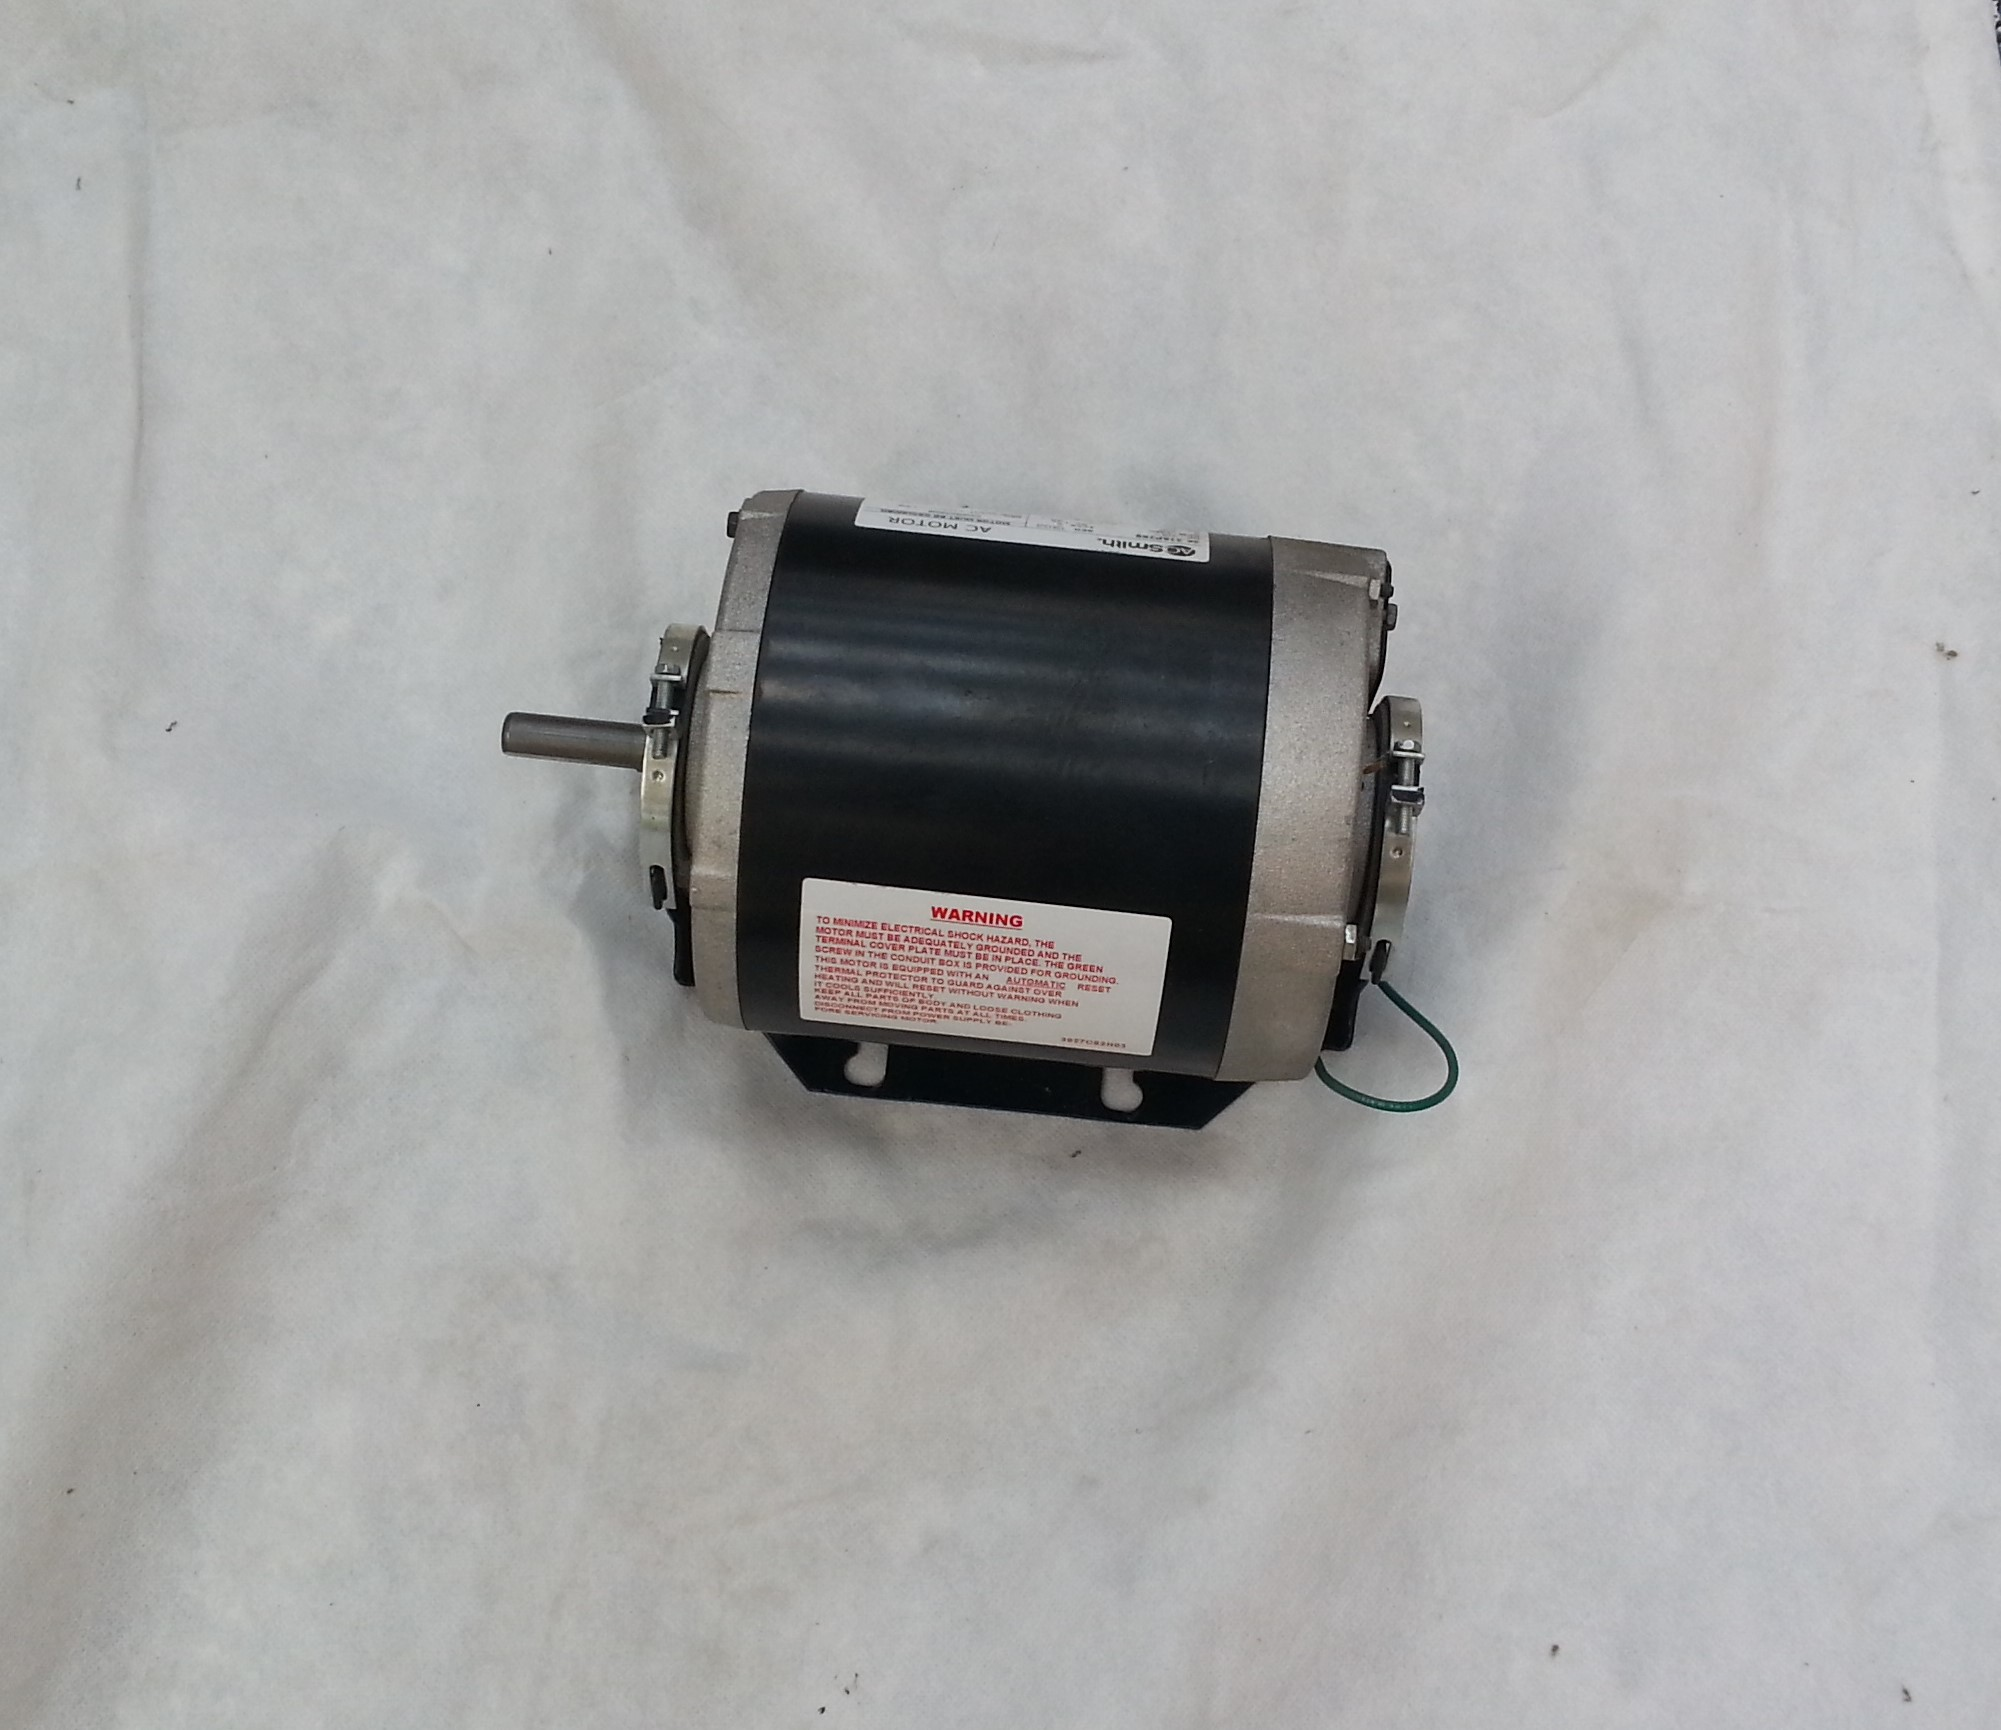 MOTOR, EXPORT MODEL (220VAC, 50 HZ) #900488 Image